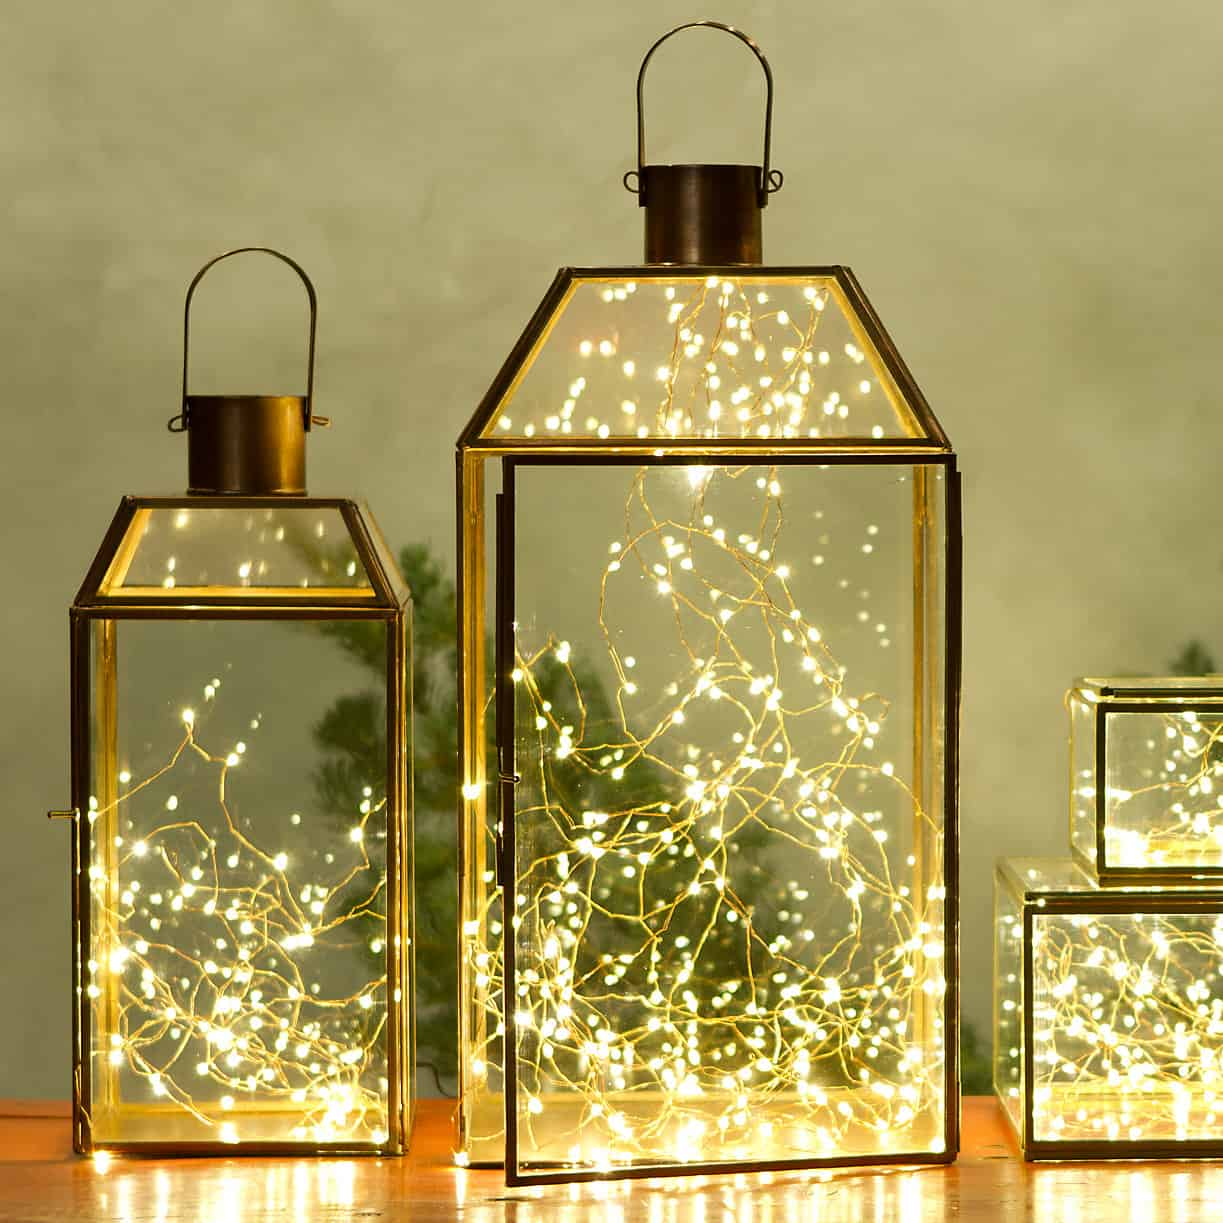 Incorporating Christmas fairy lights inside of any lantern case can give you a bolder lighting fixture than a simple lantern would.